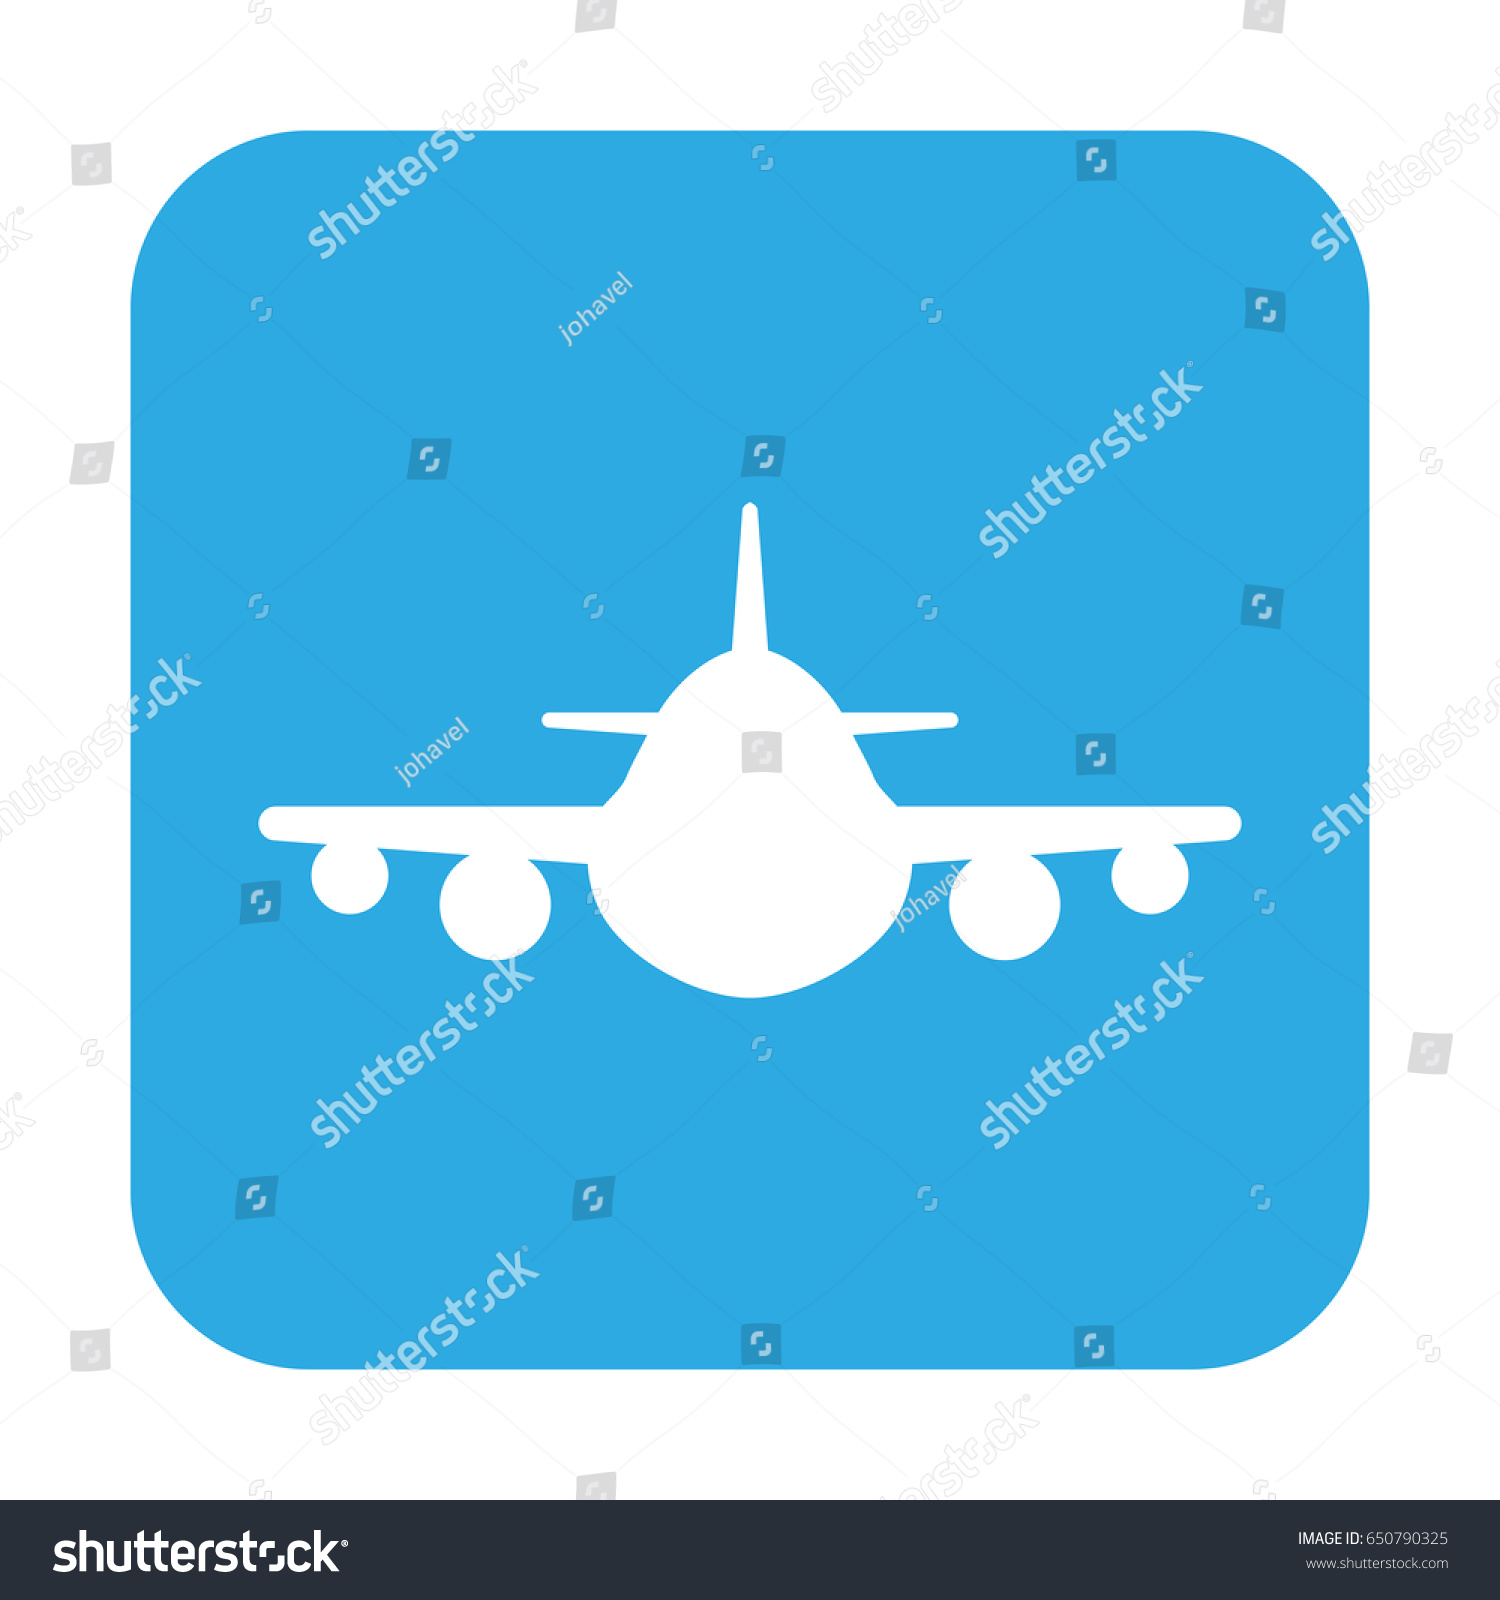 button icon airplane stock vector 650790325 shutterstock